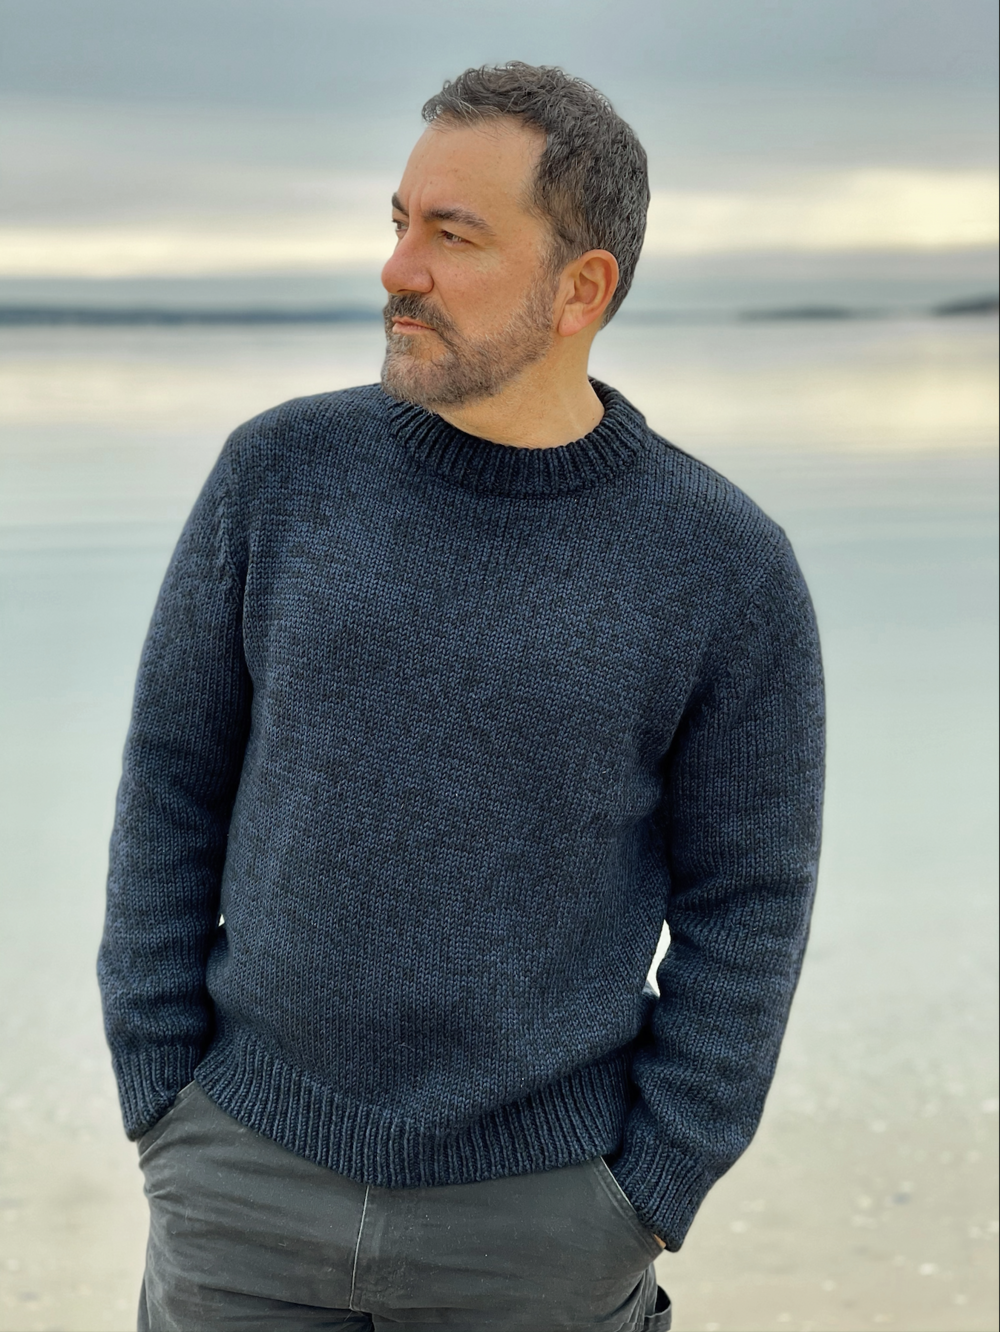 Michael wears  the NICK Sweater  in Navy/black tweed  (SHOP HERE)     Also available in Graphite Tweed  (SHOP HERE)